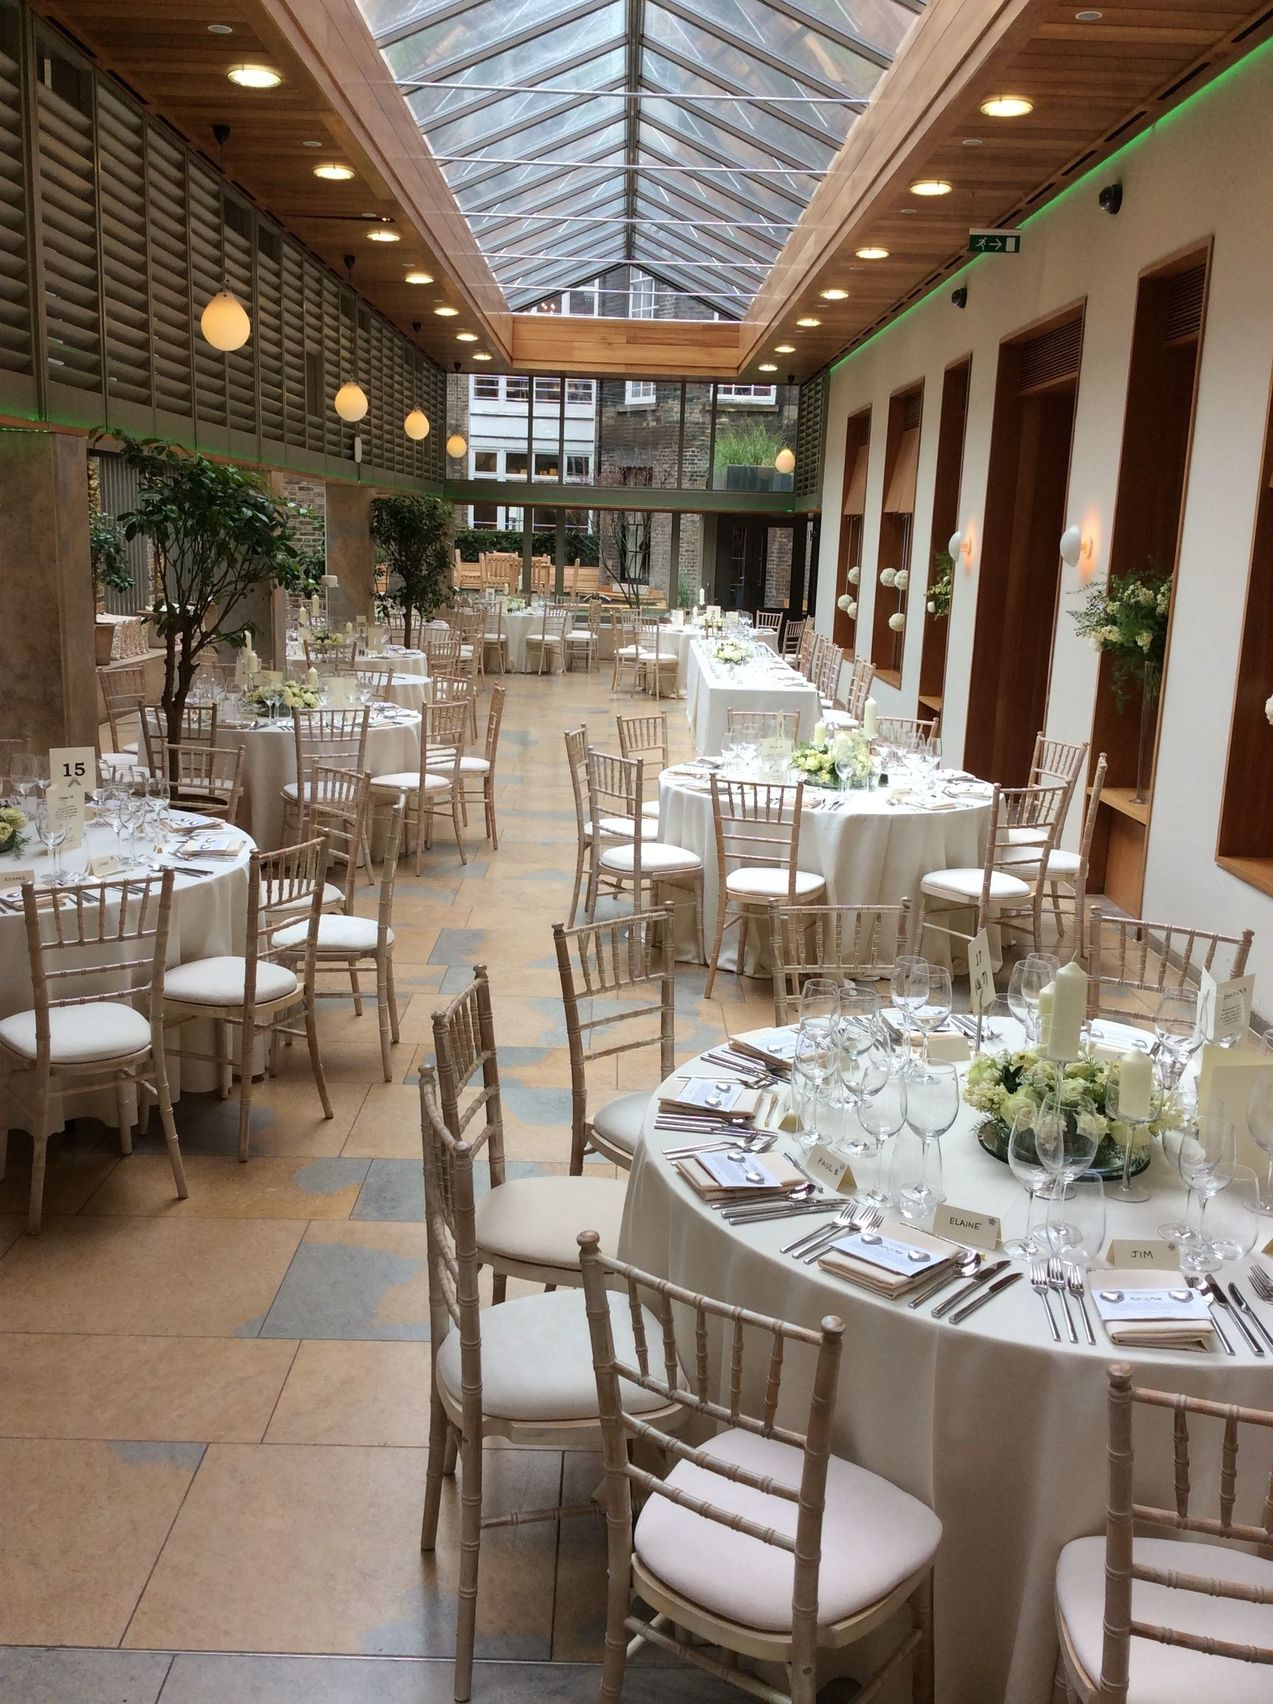 The Orangery & Courtyard Garden, No.11 Cavendish Square